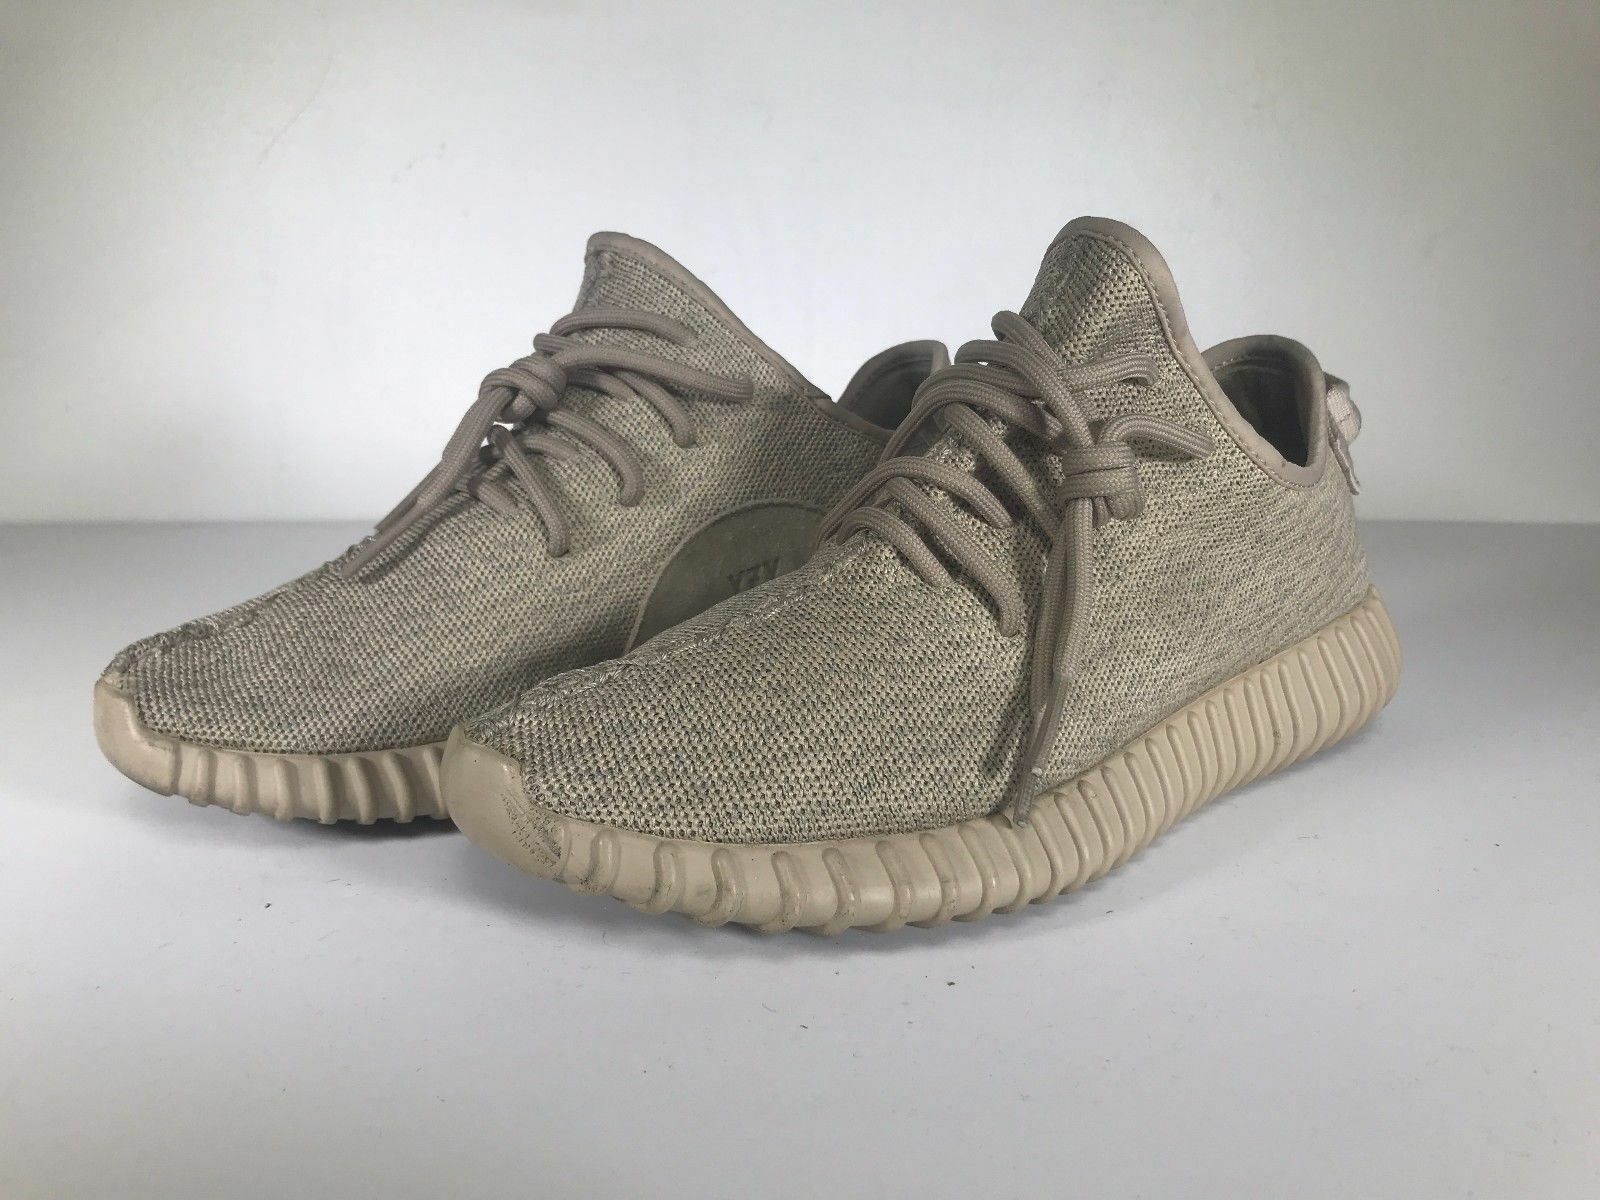 Pre-Owned Adidas Yeezy 350 Boost Oxford Tan Sneakers